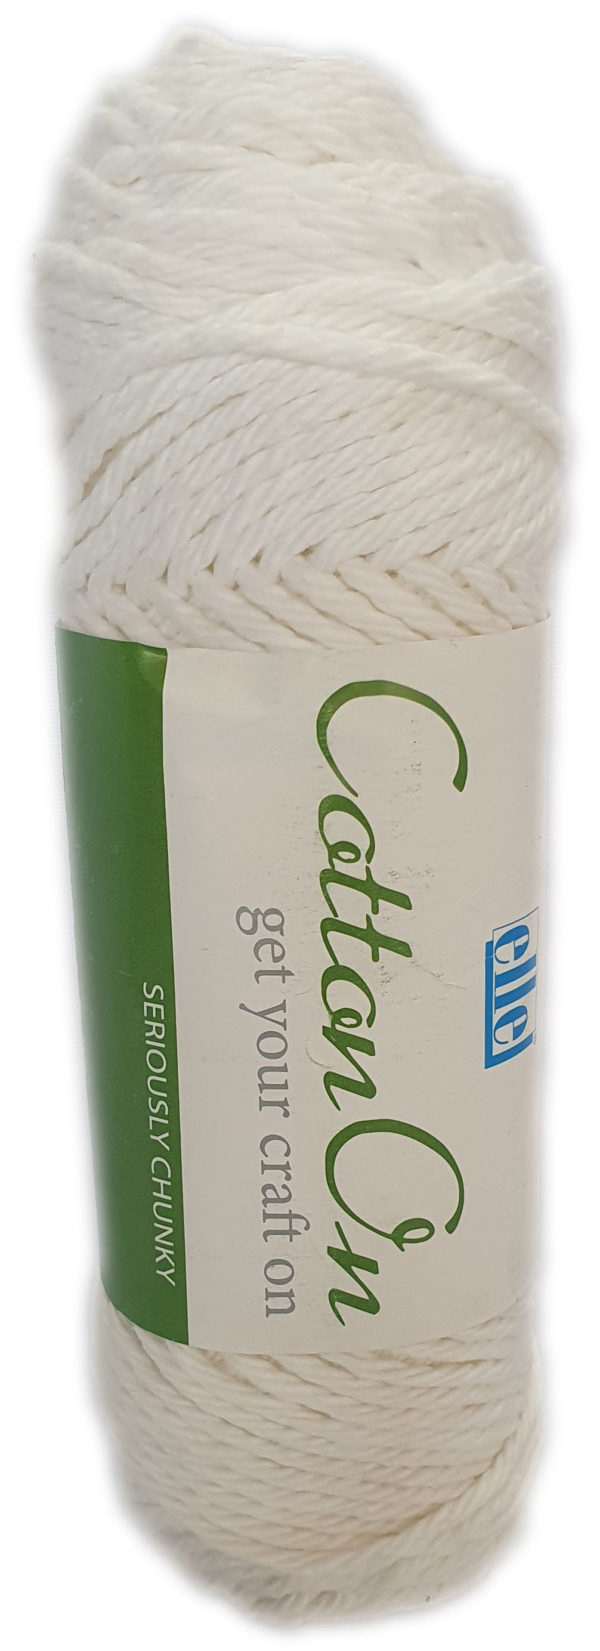 COTTON ON SERIOUSLY CHUNKY 100g-COL.001 WHITE 1